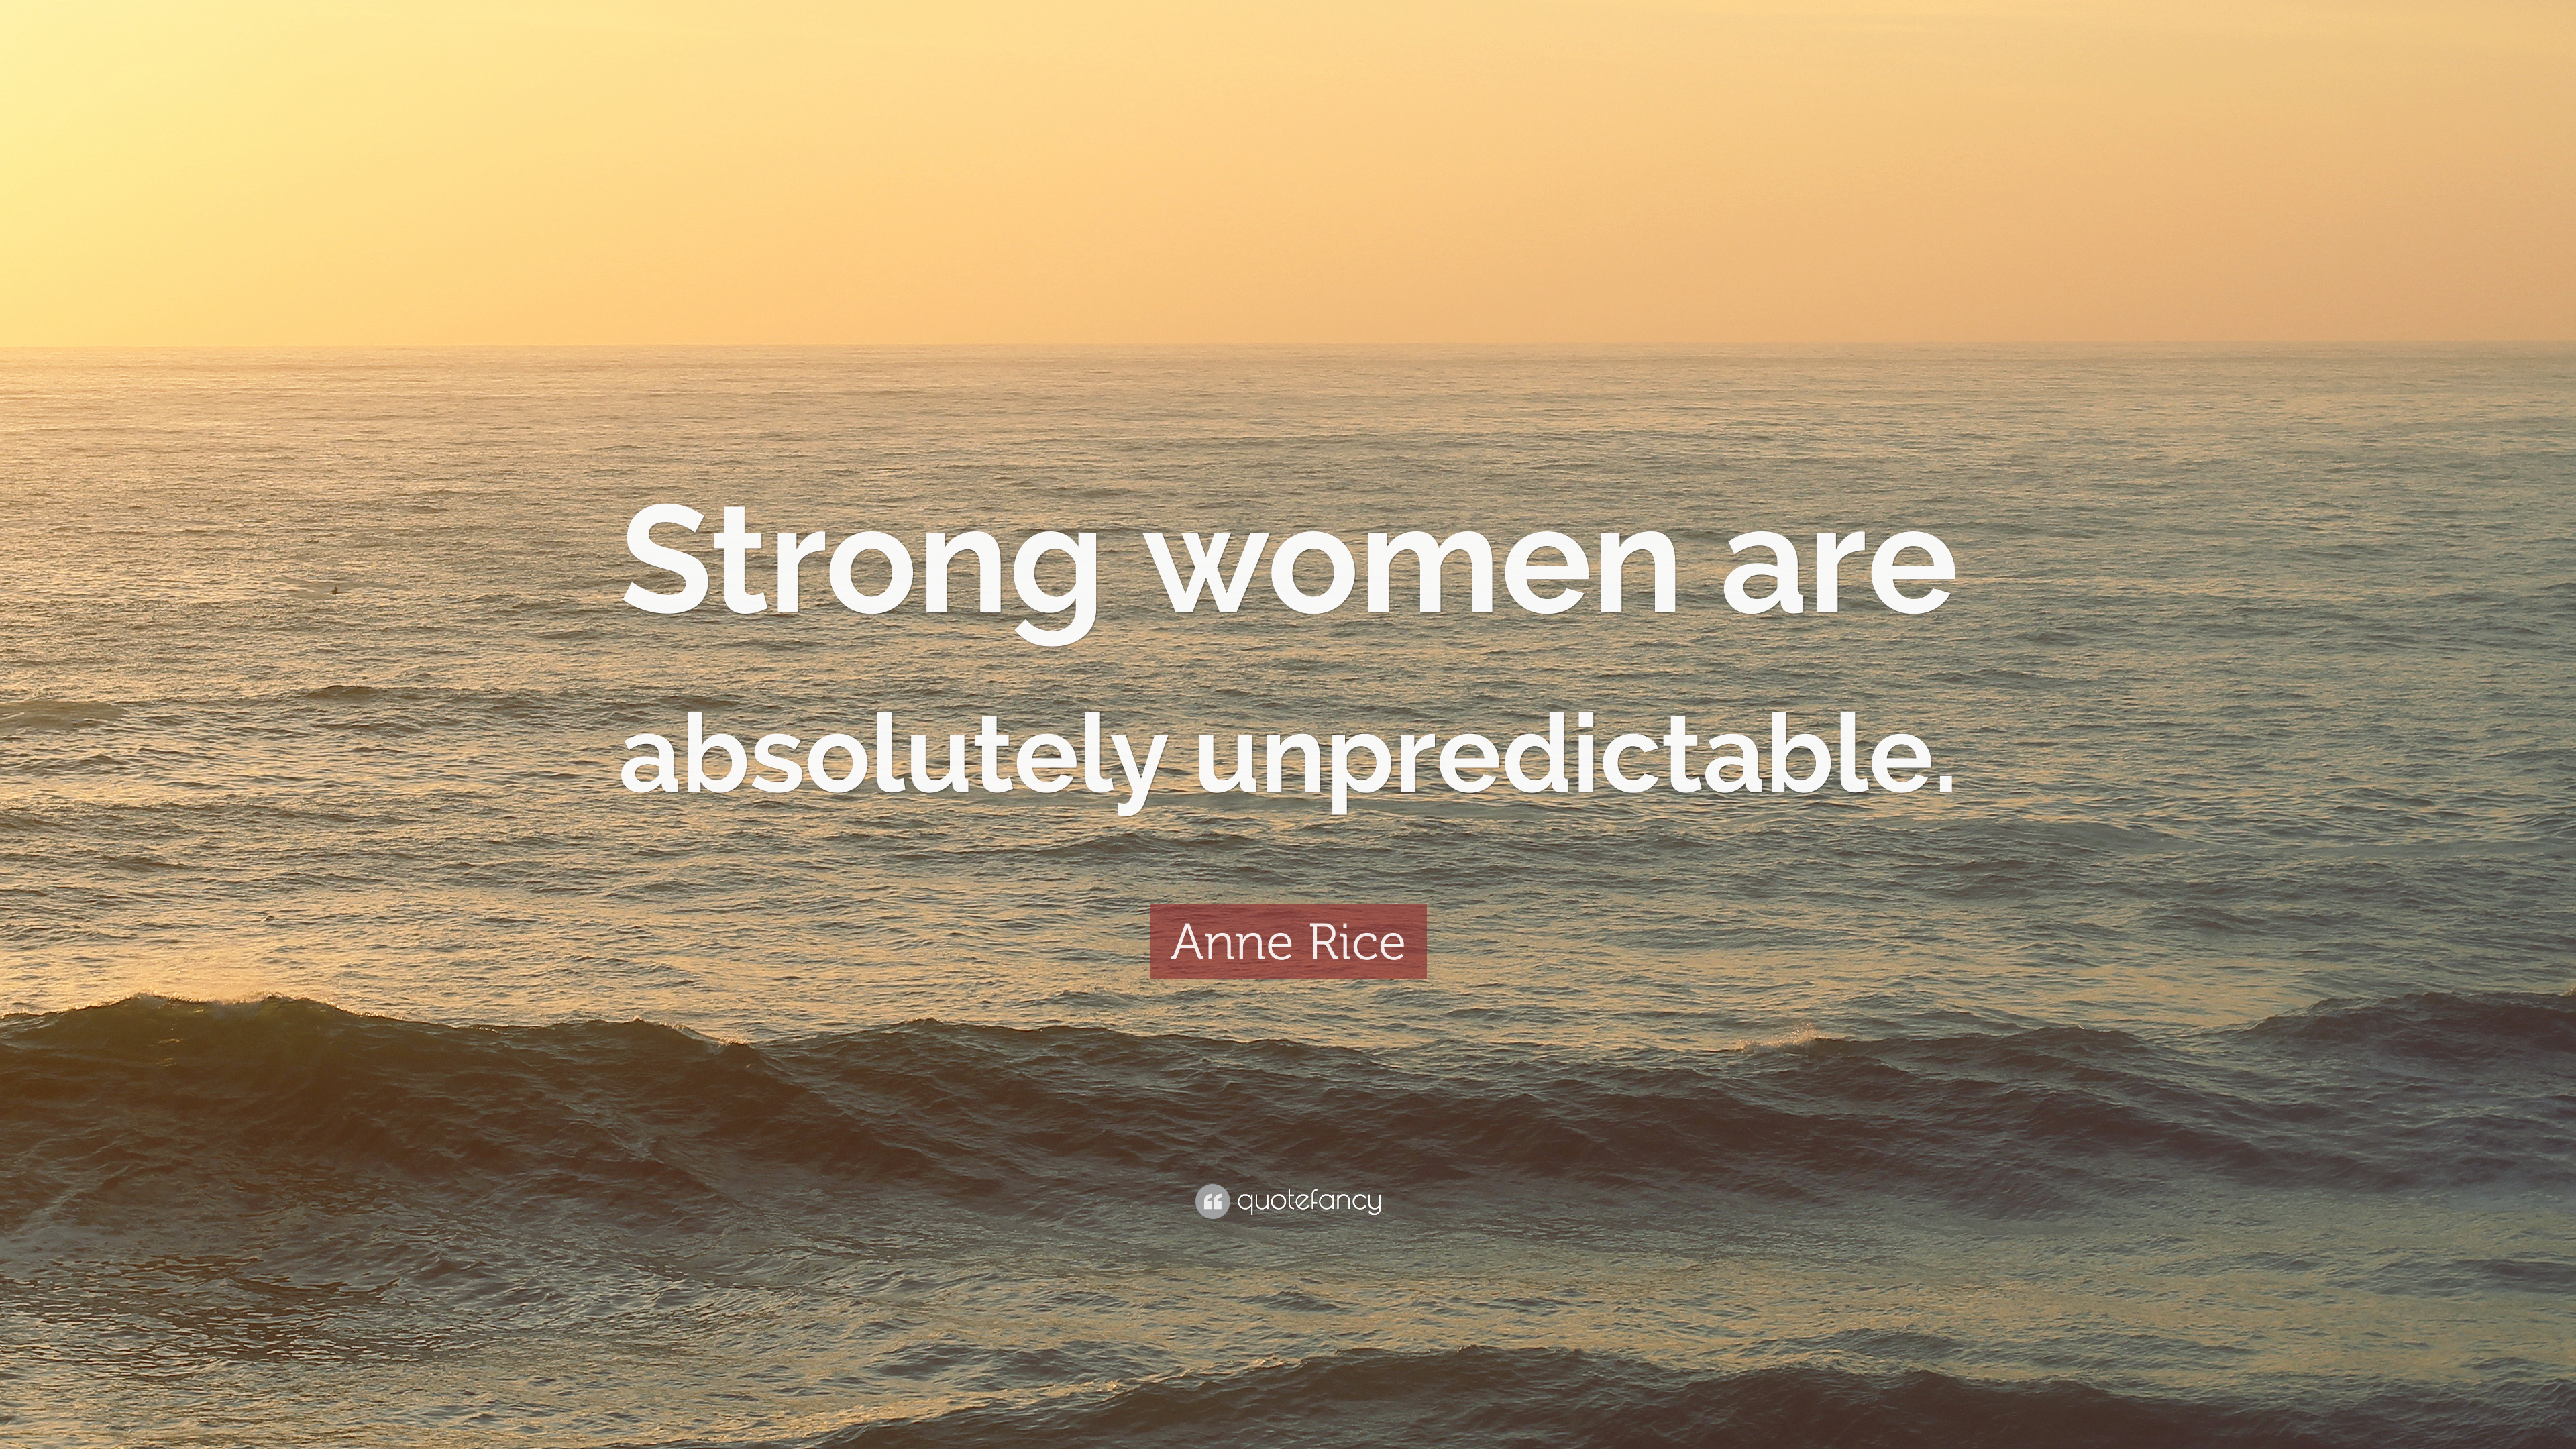 Anne Rice Quote: Strong women are absolutely